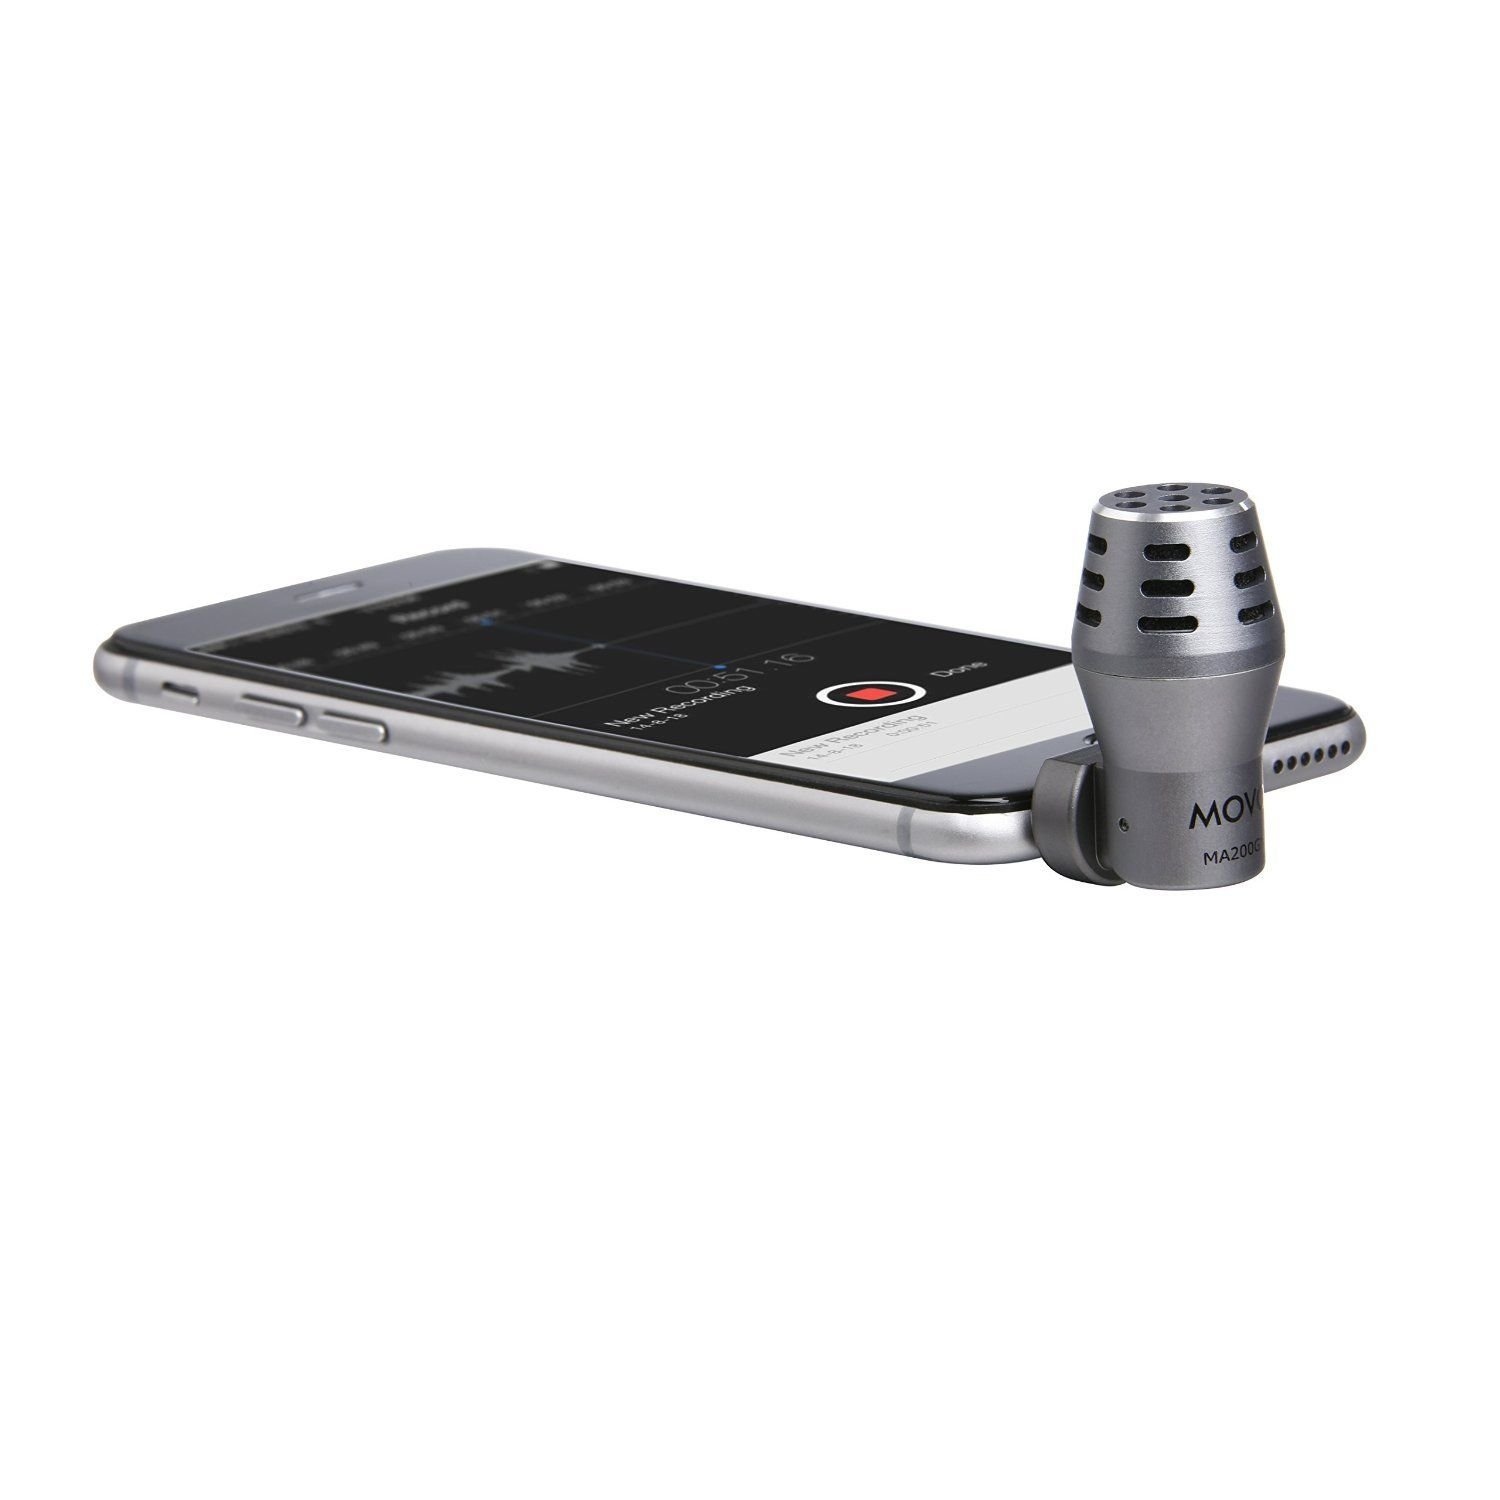 Movo MA200 Omni-Directional Calibrated TRRS Condenser Microphone for Apple iPhone, iPod Touch, iPad (Grey)